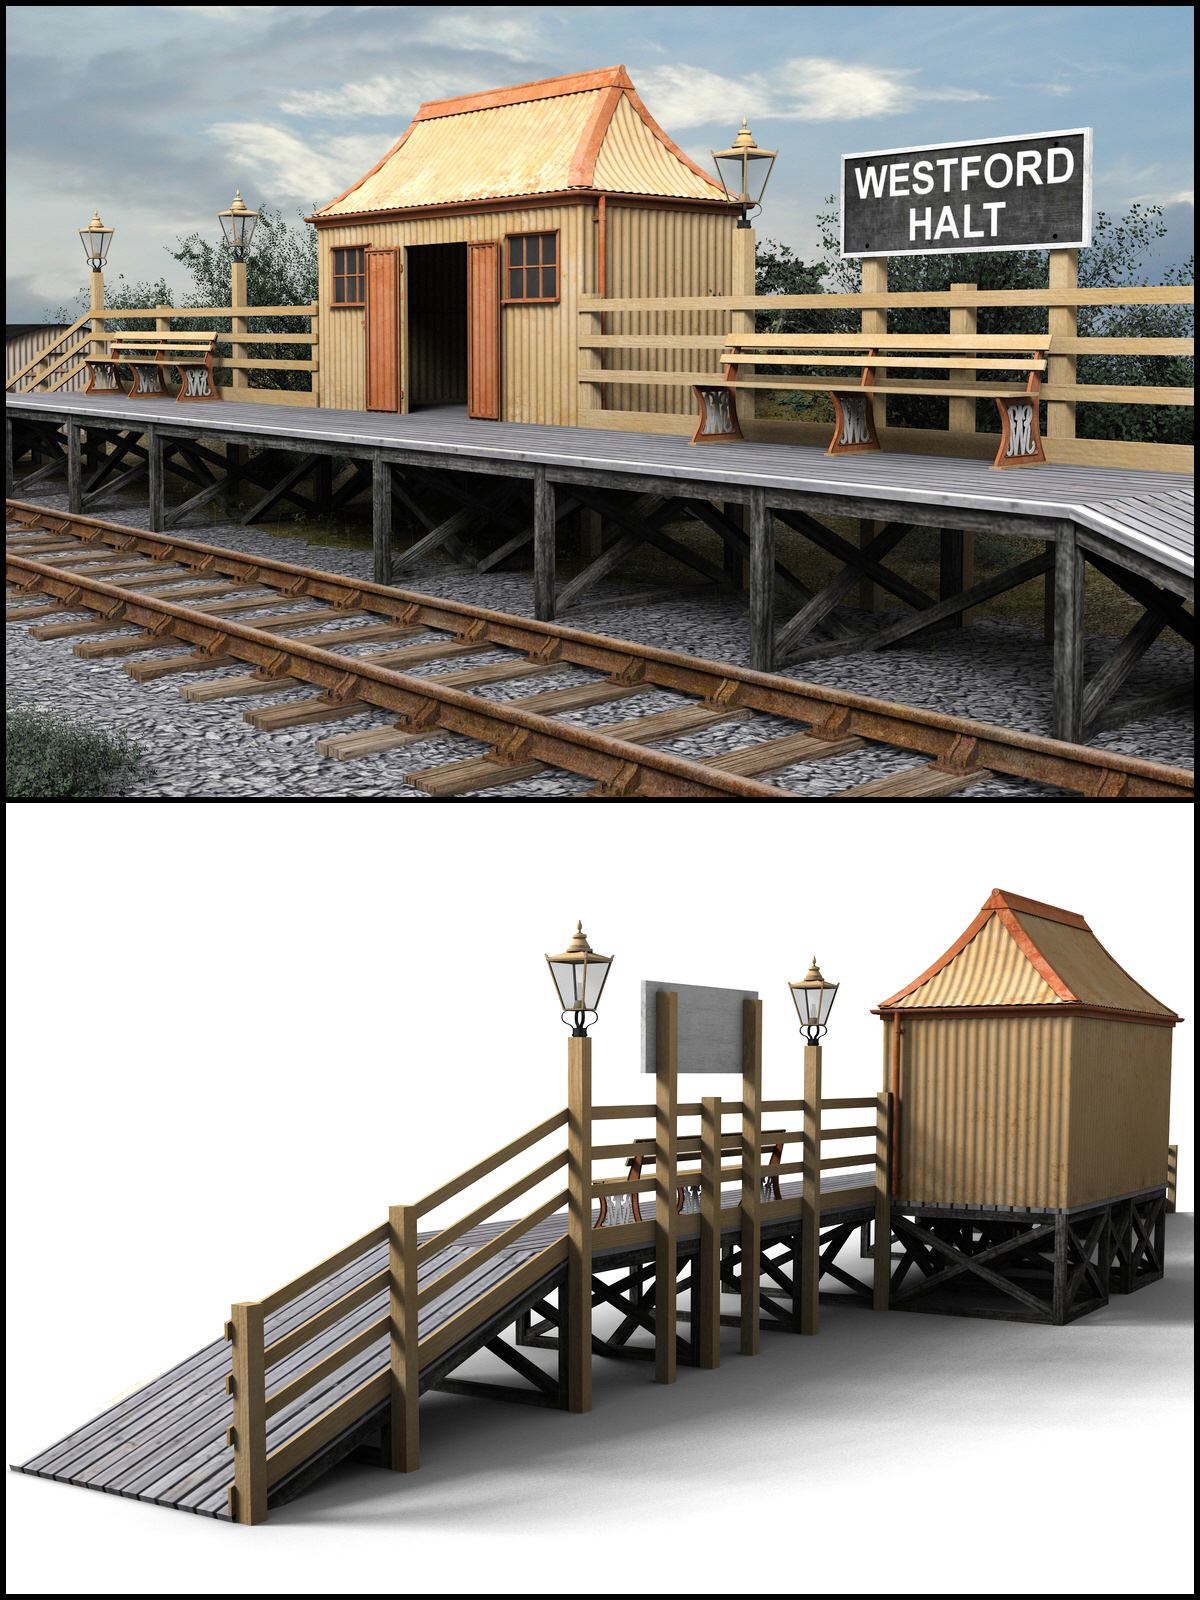 GWR Halt and Pagoda - Extended License